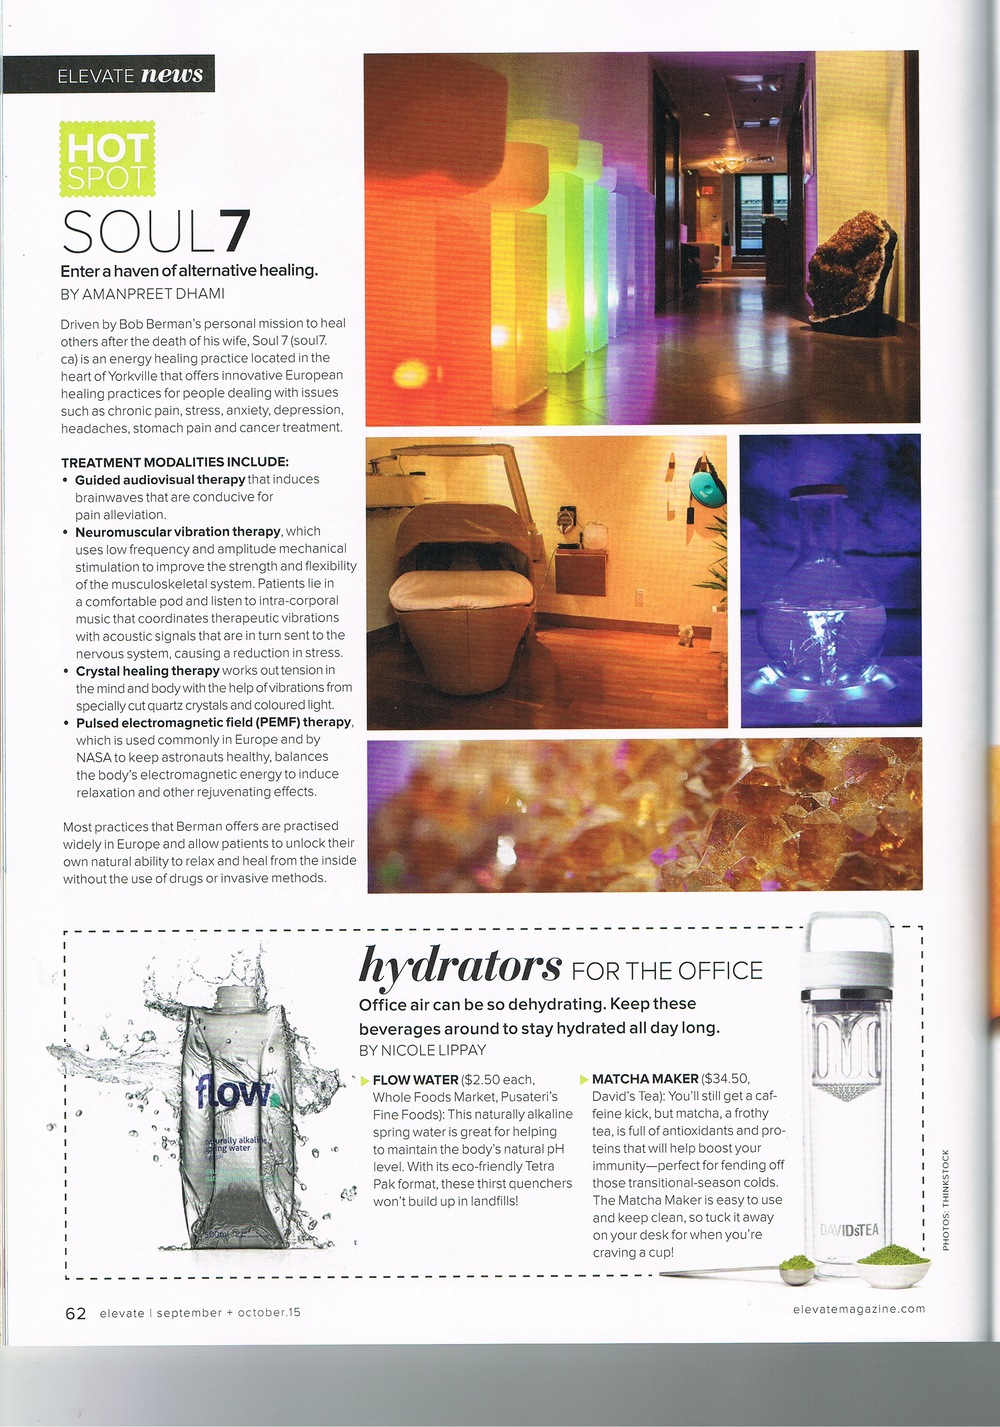 Soul 7 feature in Elevate magazine, talking about their state of the art healing centre that uses guided audiovisual therapy, neuromuscular vibration therapy, crystal healing therapy and pulsed electro magnetic field therapy, PEMF.